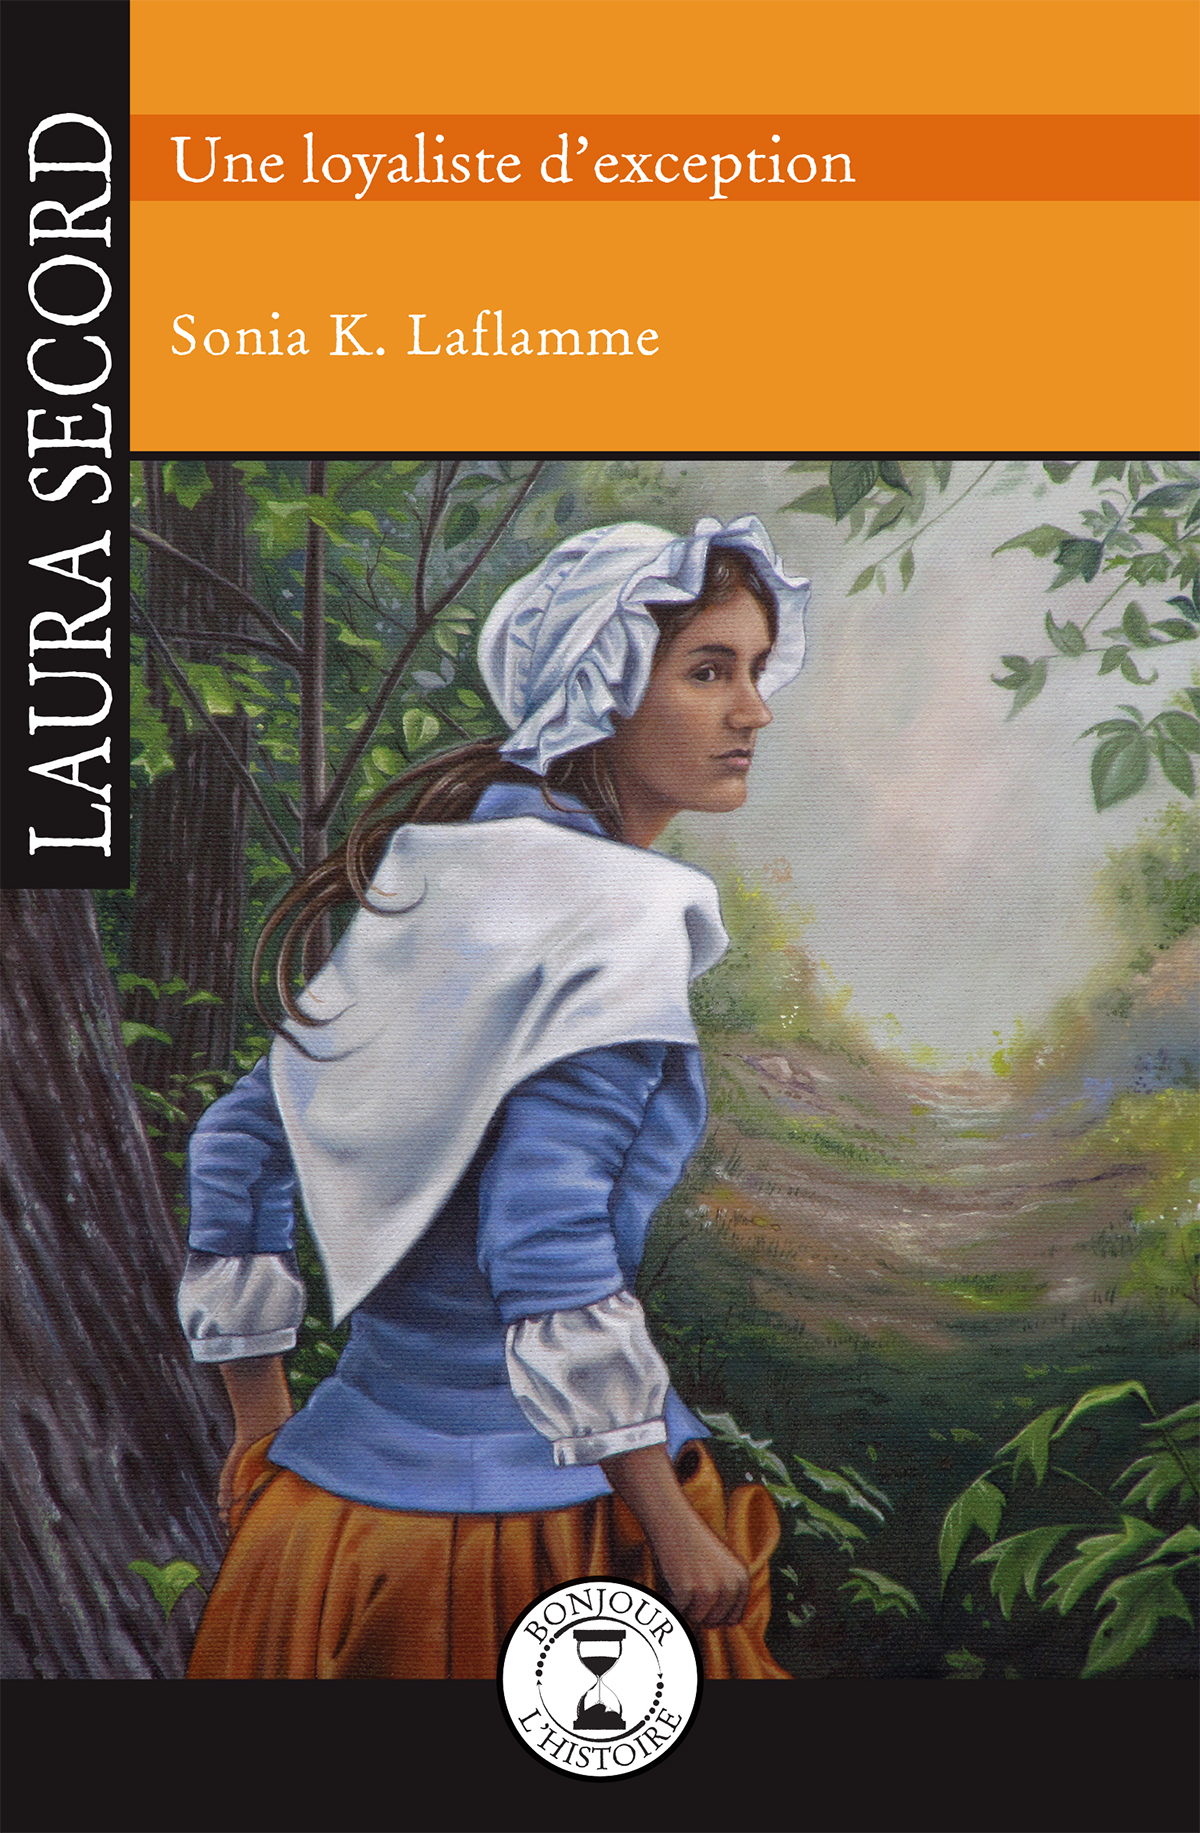 Vignette du livre Laura Secord, une loyaliste d'exception